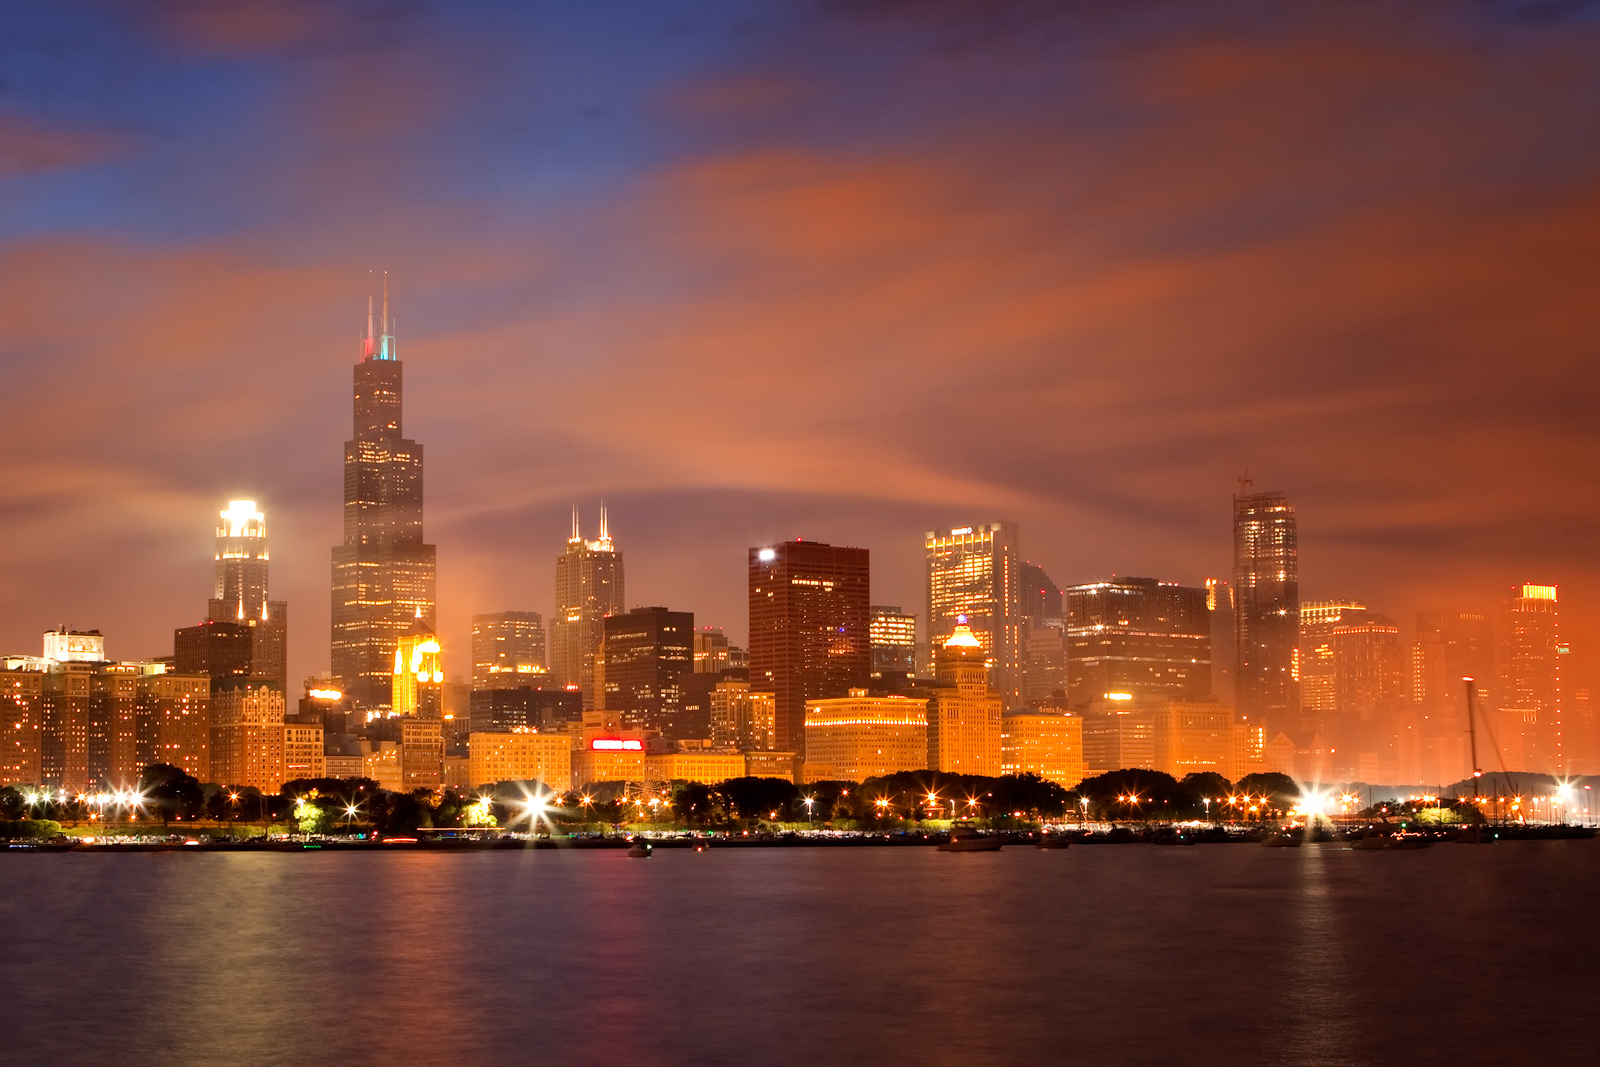 america,chicago,city scape,cityscape,colorful,horizontal,il,illinois,lake michigan,midwest,north america,skyline,smoke,united states,us,usa, photo